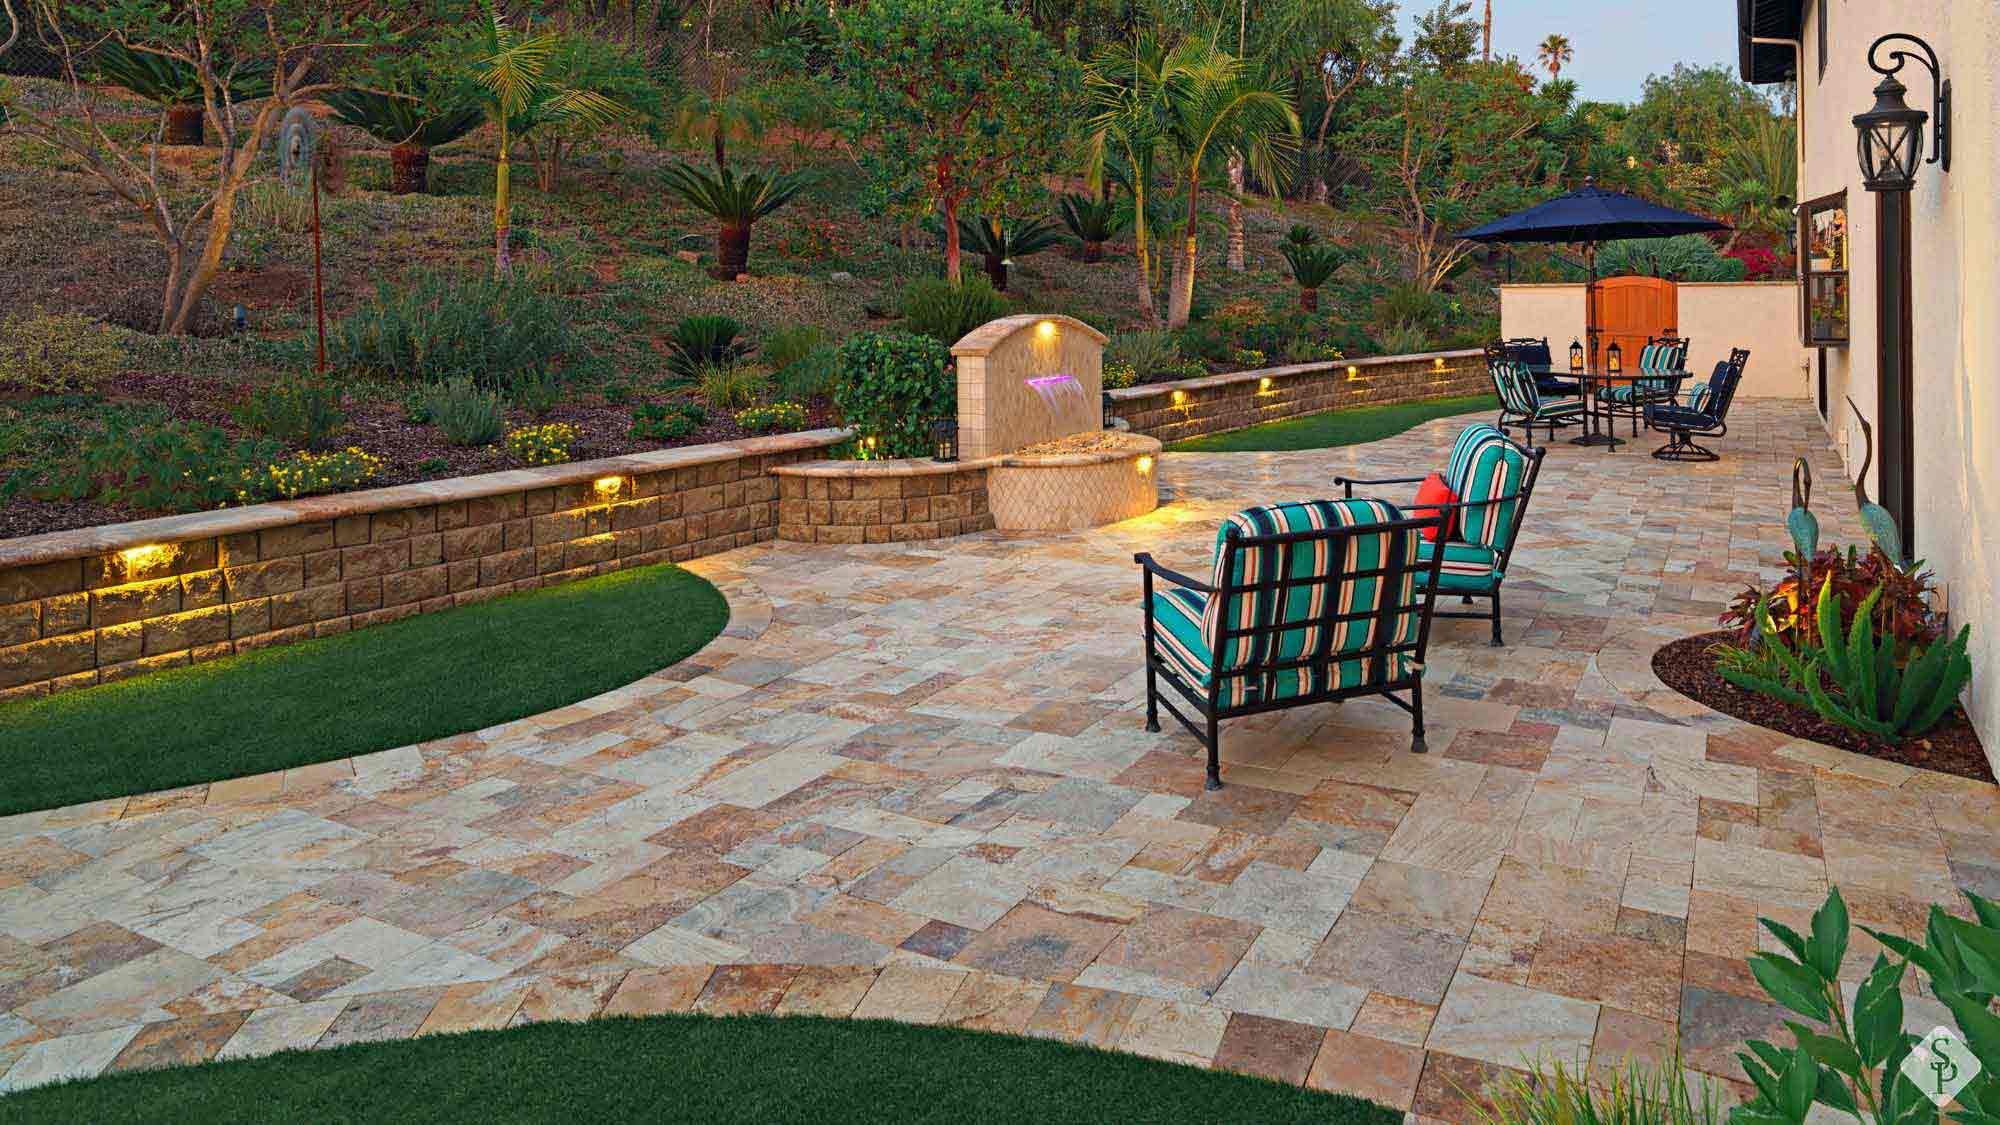 With an outdoor paver patio, creating lifelong memories will be easy to do right in the comfort of your own backyard.